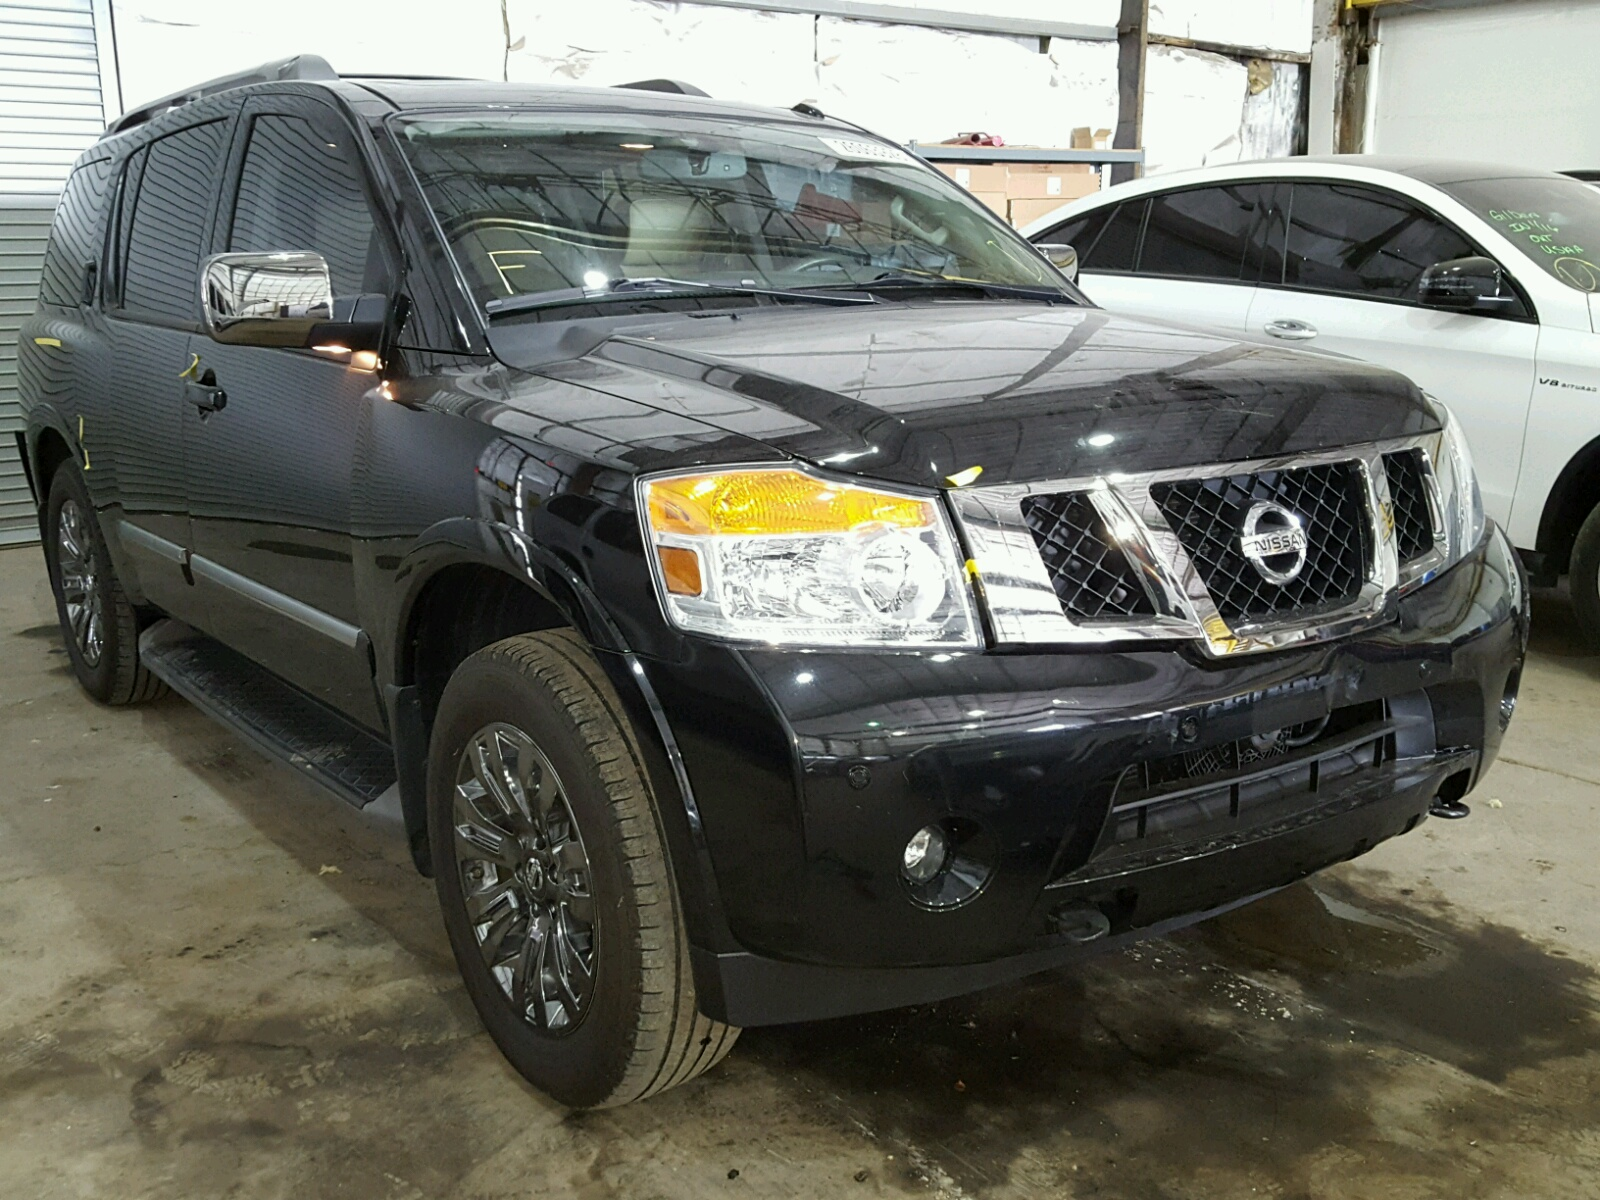 pathfinder drive car titan spondent nissan wordpress and armada first